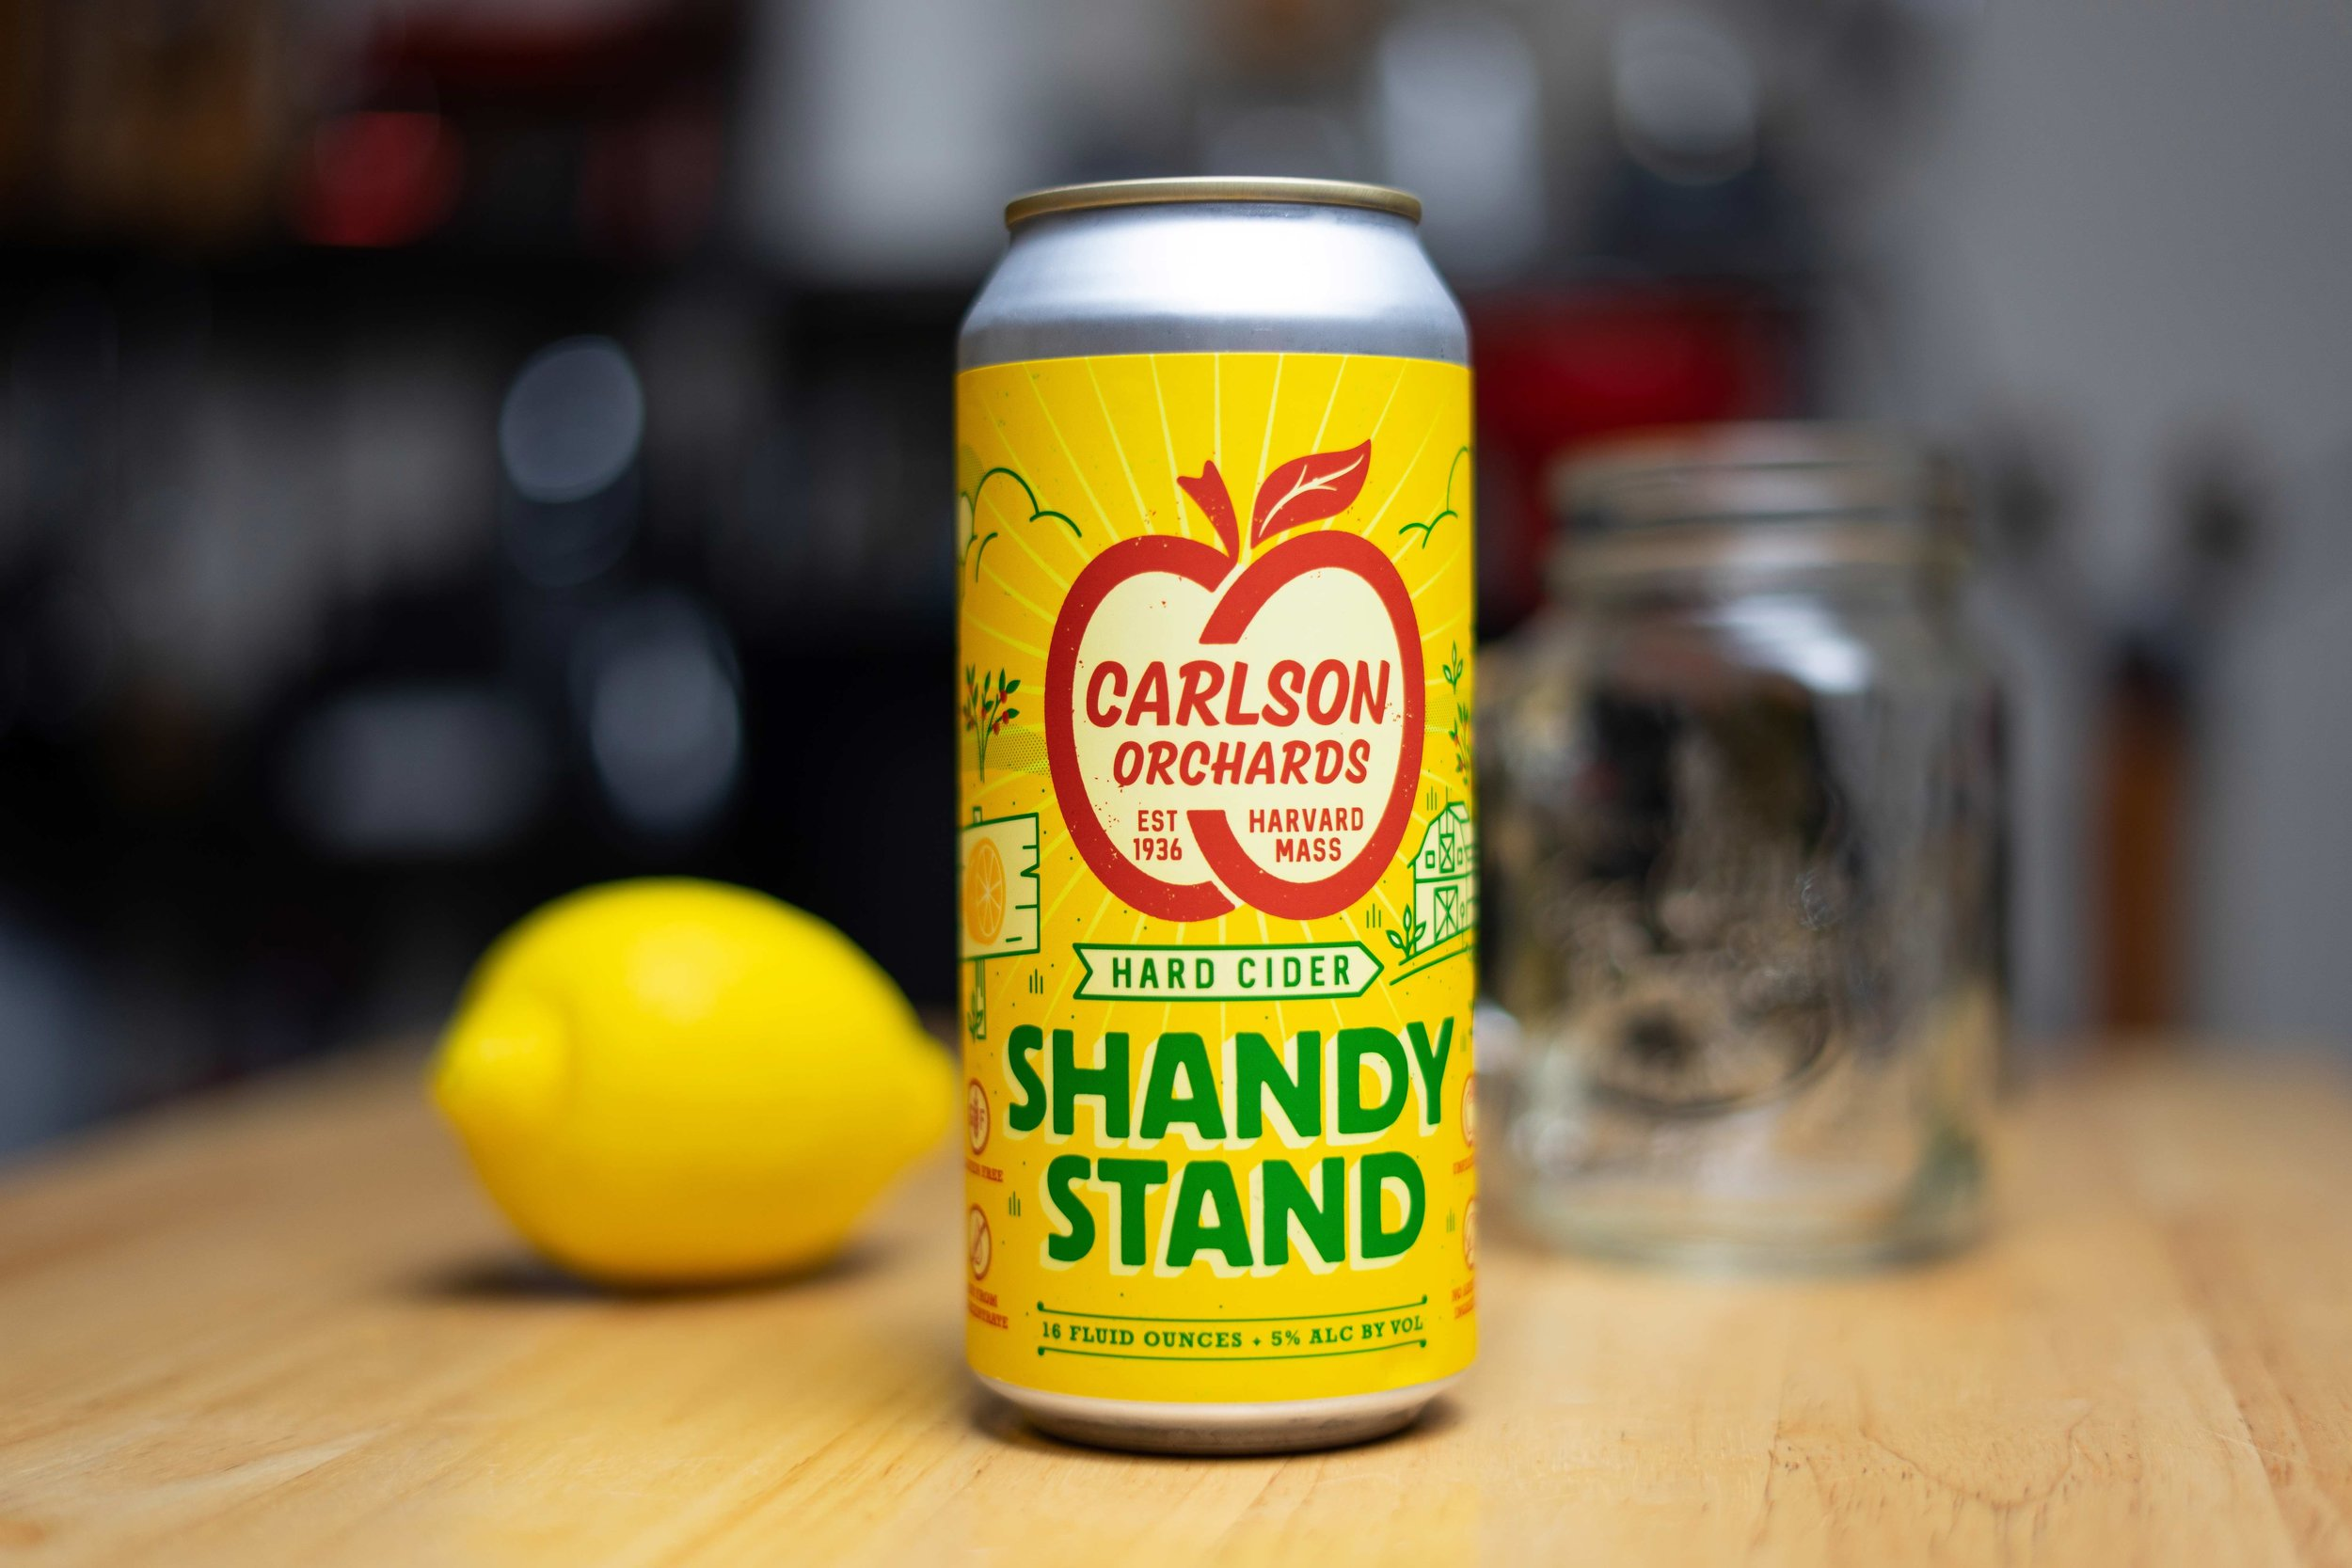 Carlson Orchards Shandy Stand